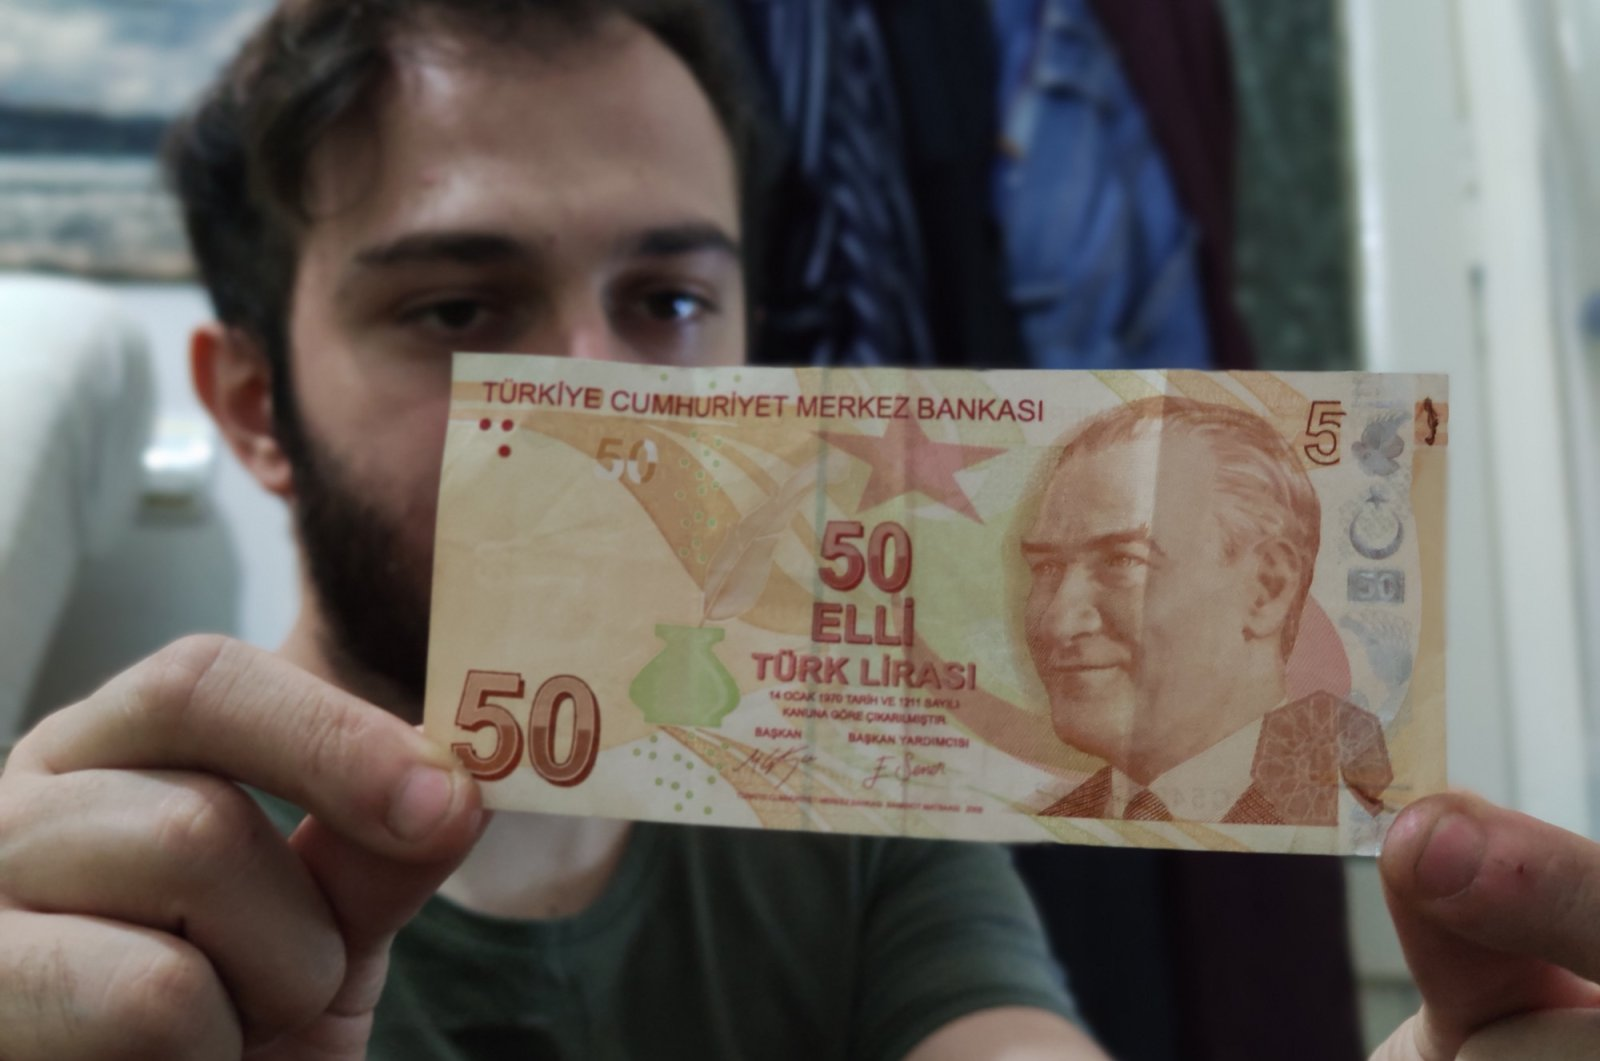 Doğan Kaya displays the misprinted TL 50 bill, with the defect visible on top right, in Bursa, Turkey, Sept. 15, 2020. (DHA Photo)